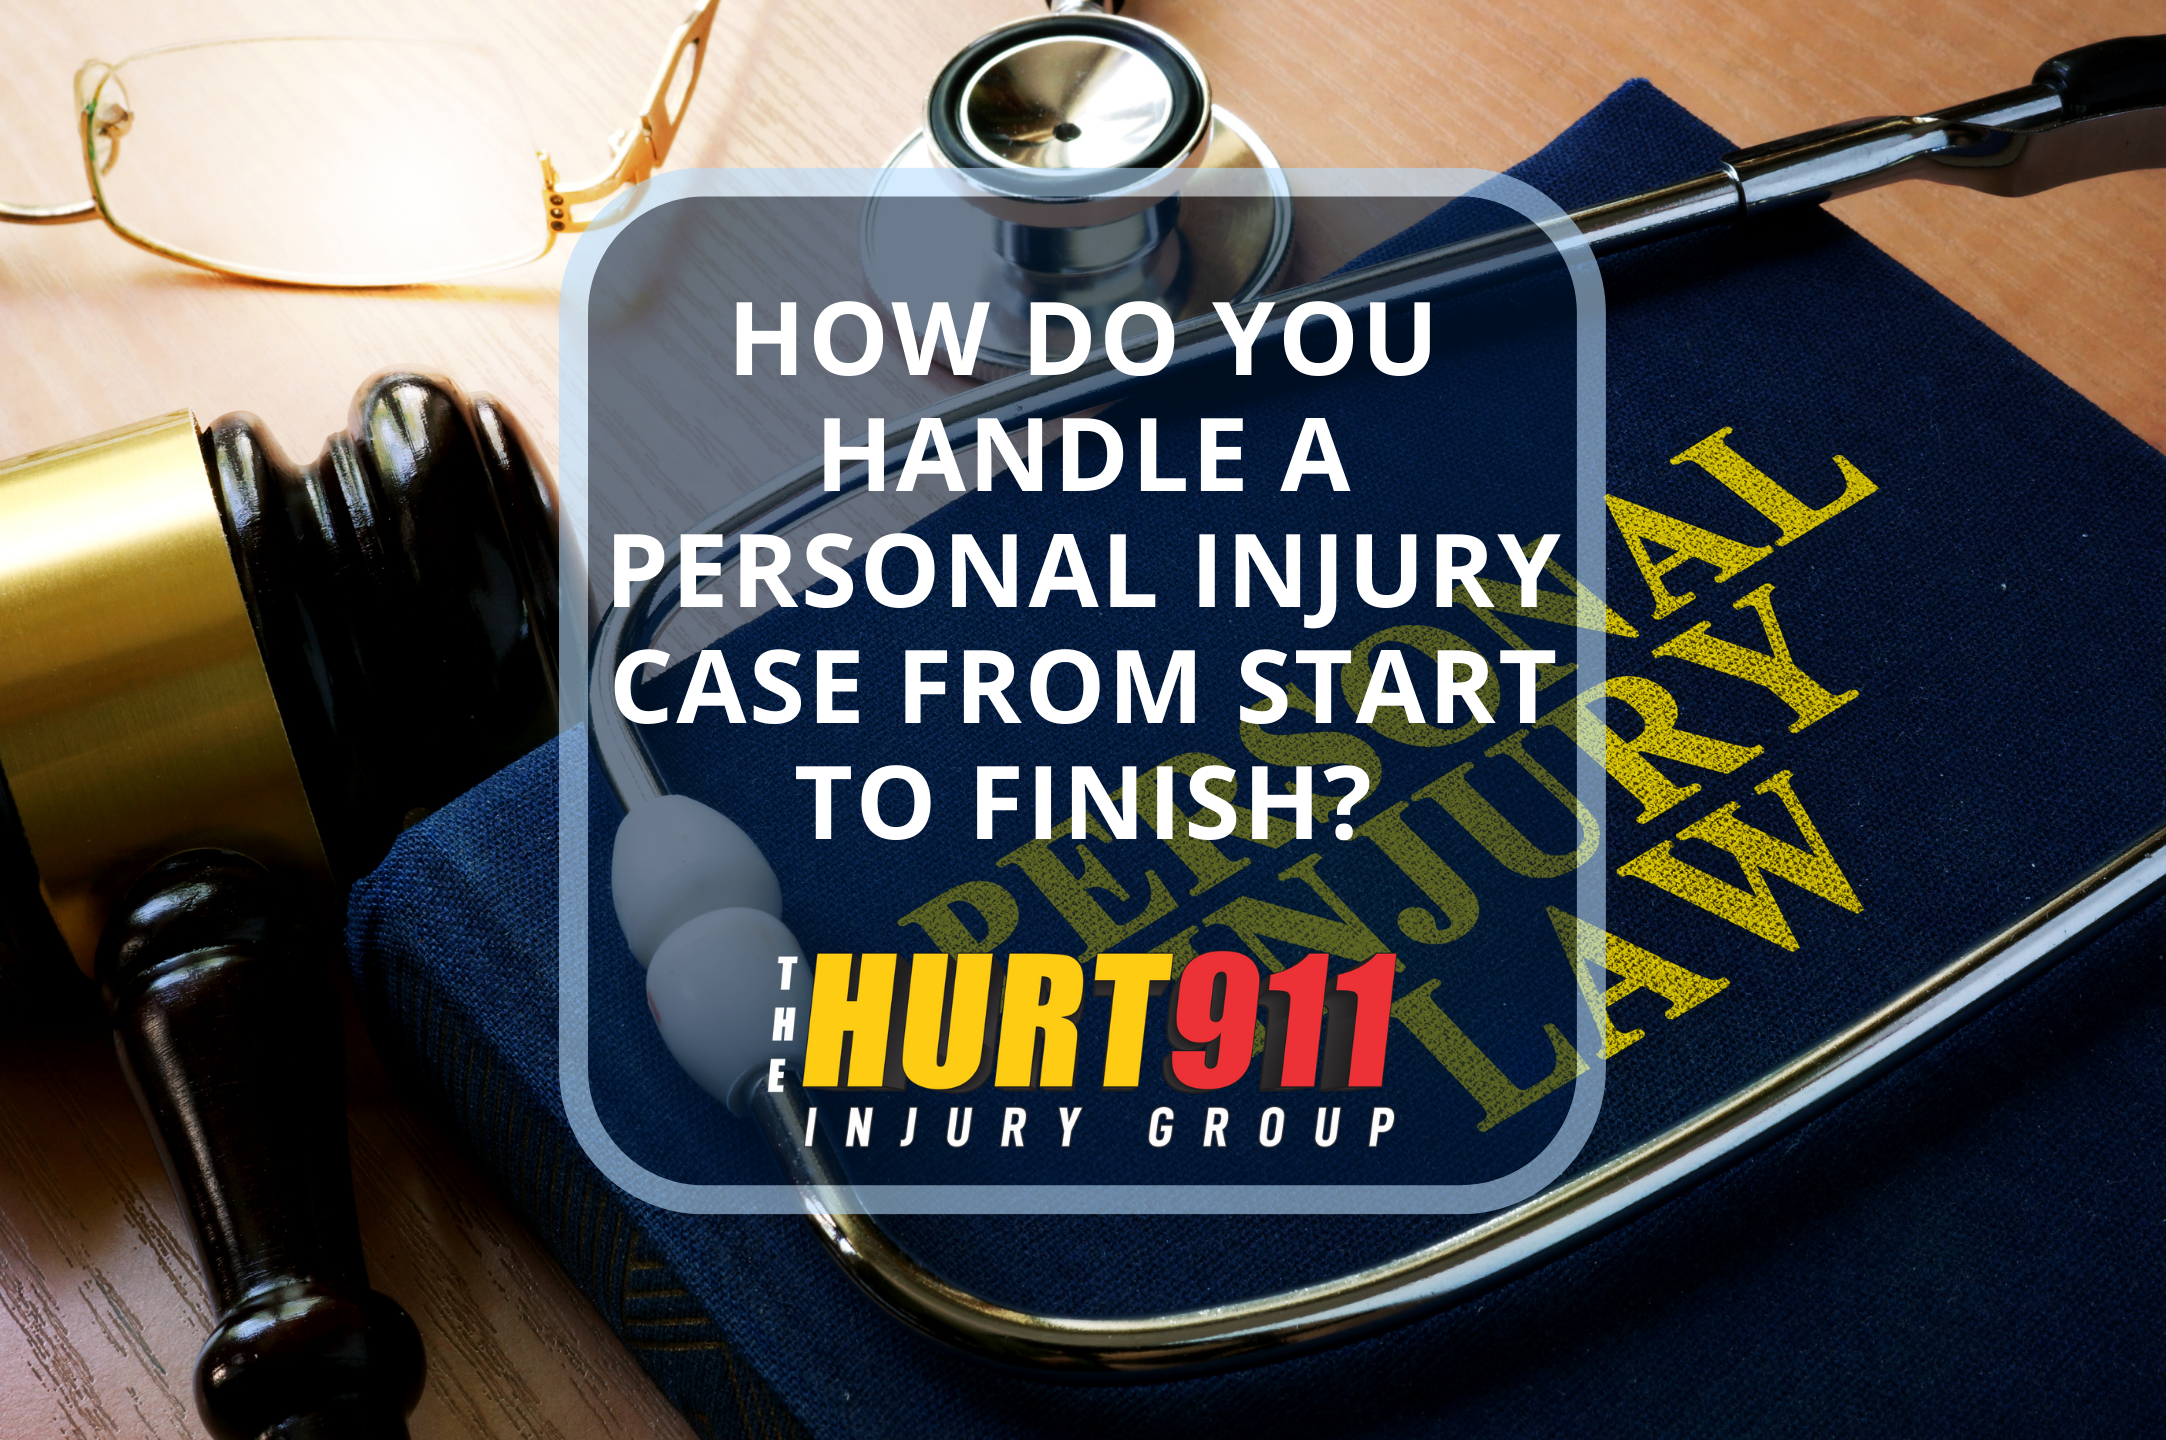 How Do You Handle a Personal Injury Case From Start to Finish?